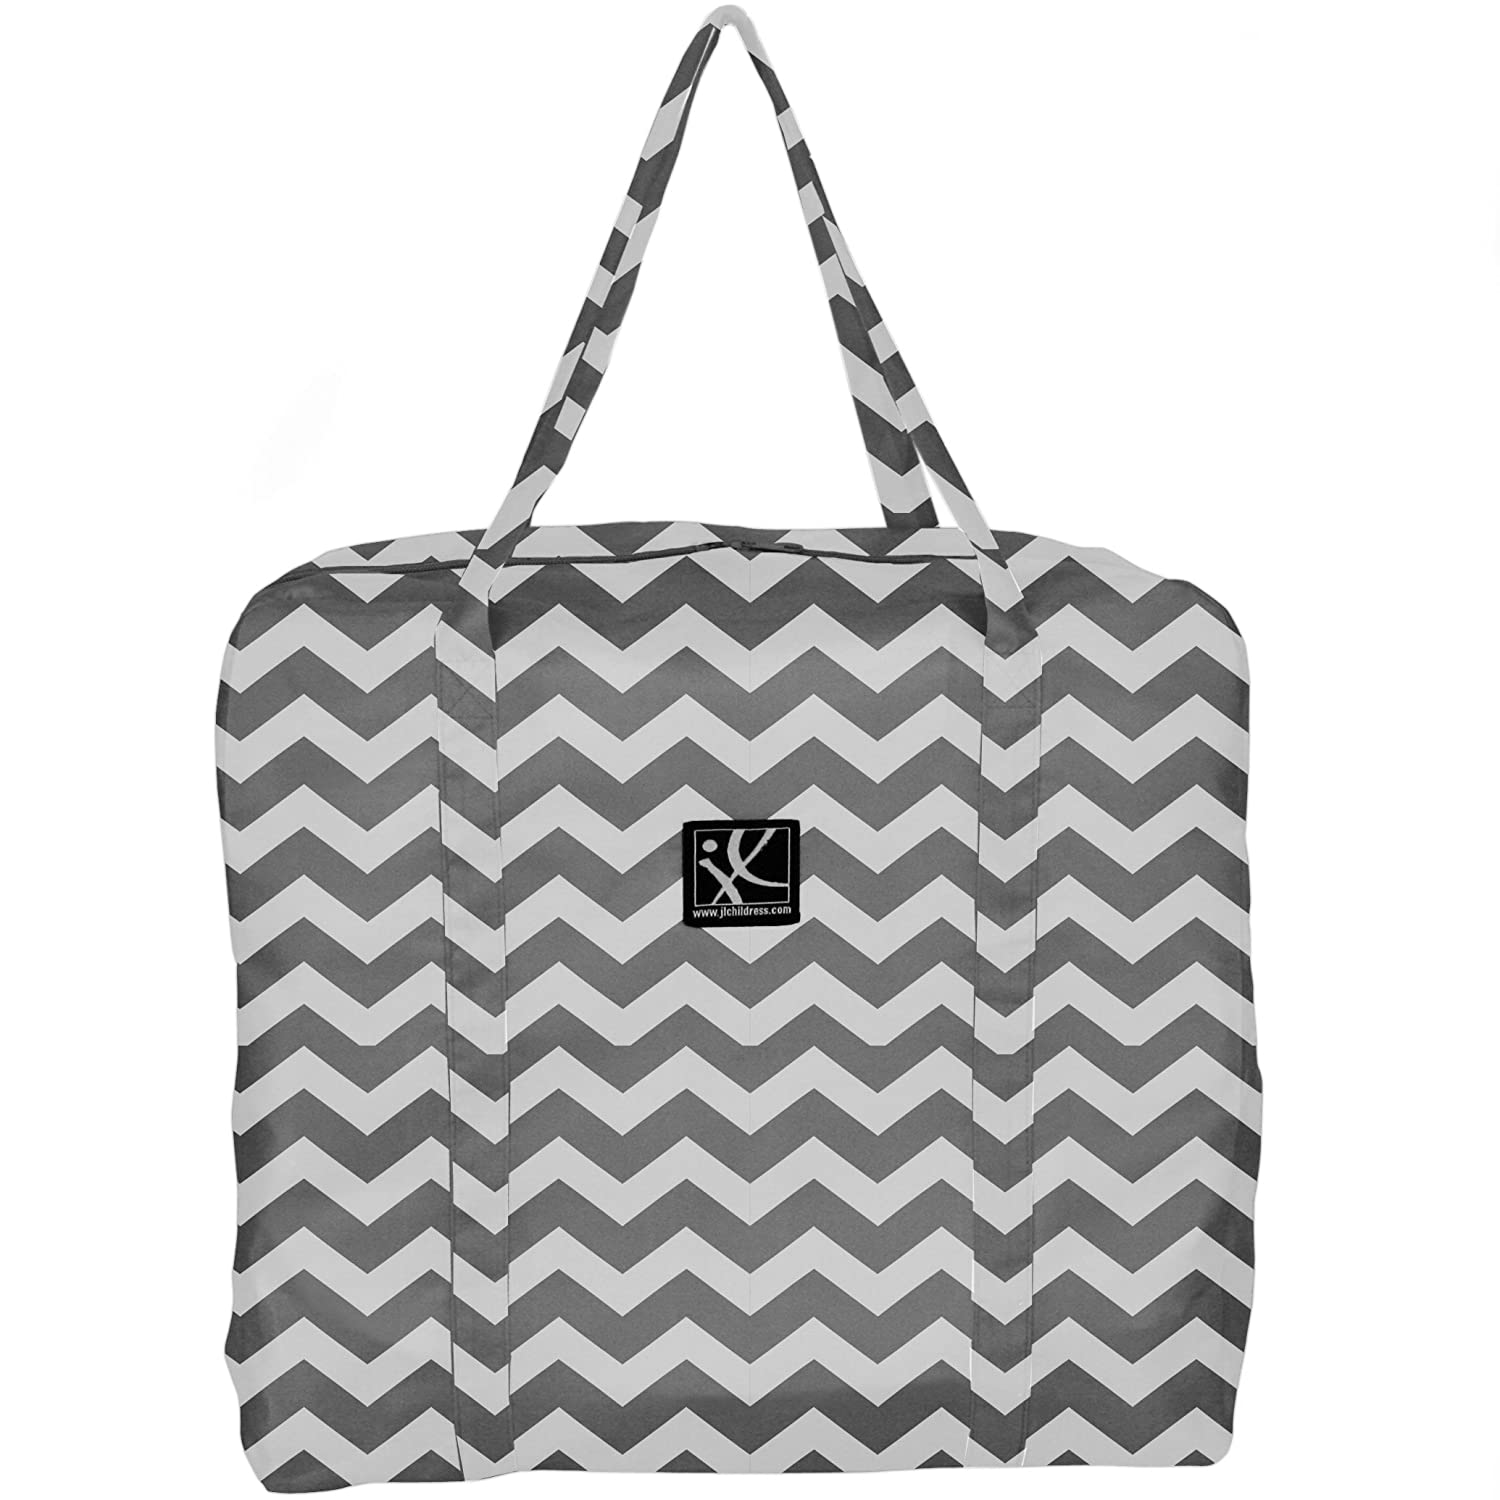 J.L. Childress Booster Go-Go Travel Bag for Backless Seats, Chevron 2013